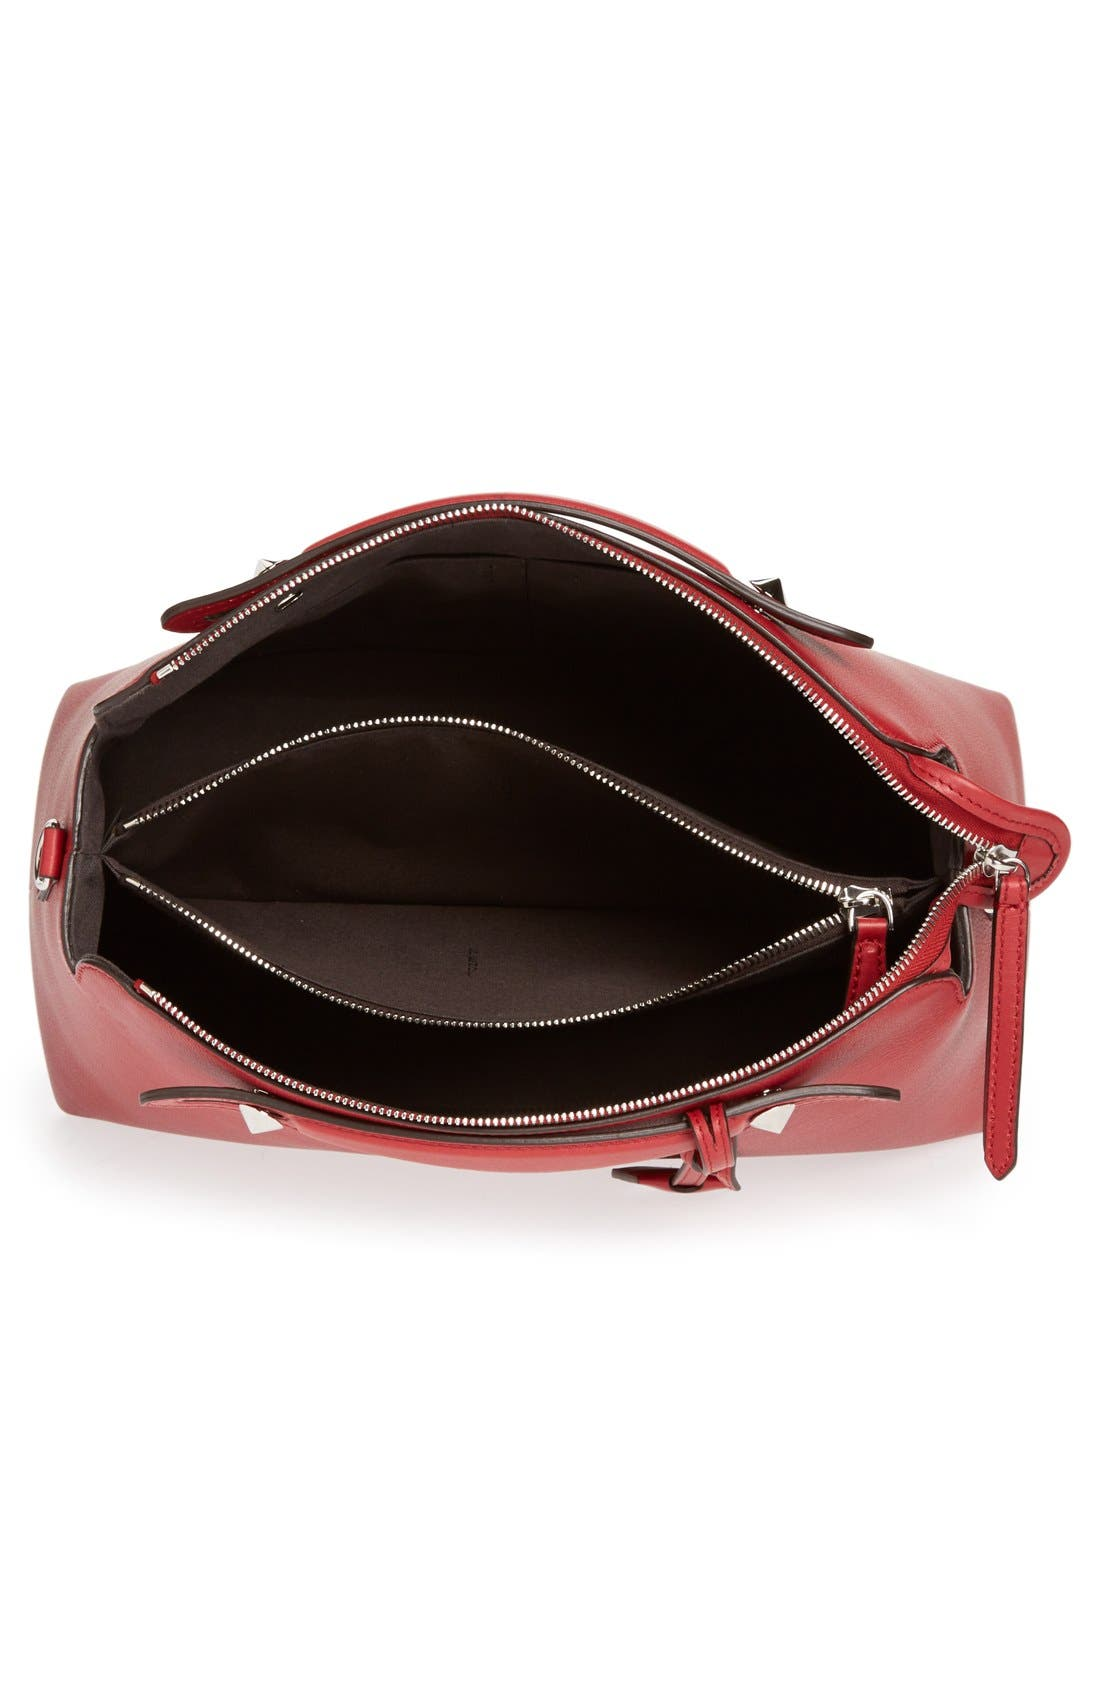 Alternate Image 3  - Fendi 'Bauletto Grande' Leather Shoulder Bag